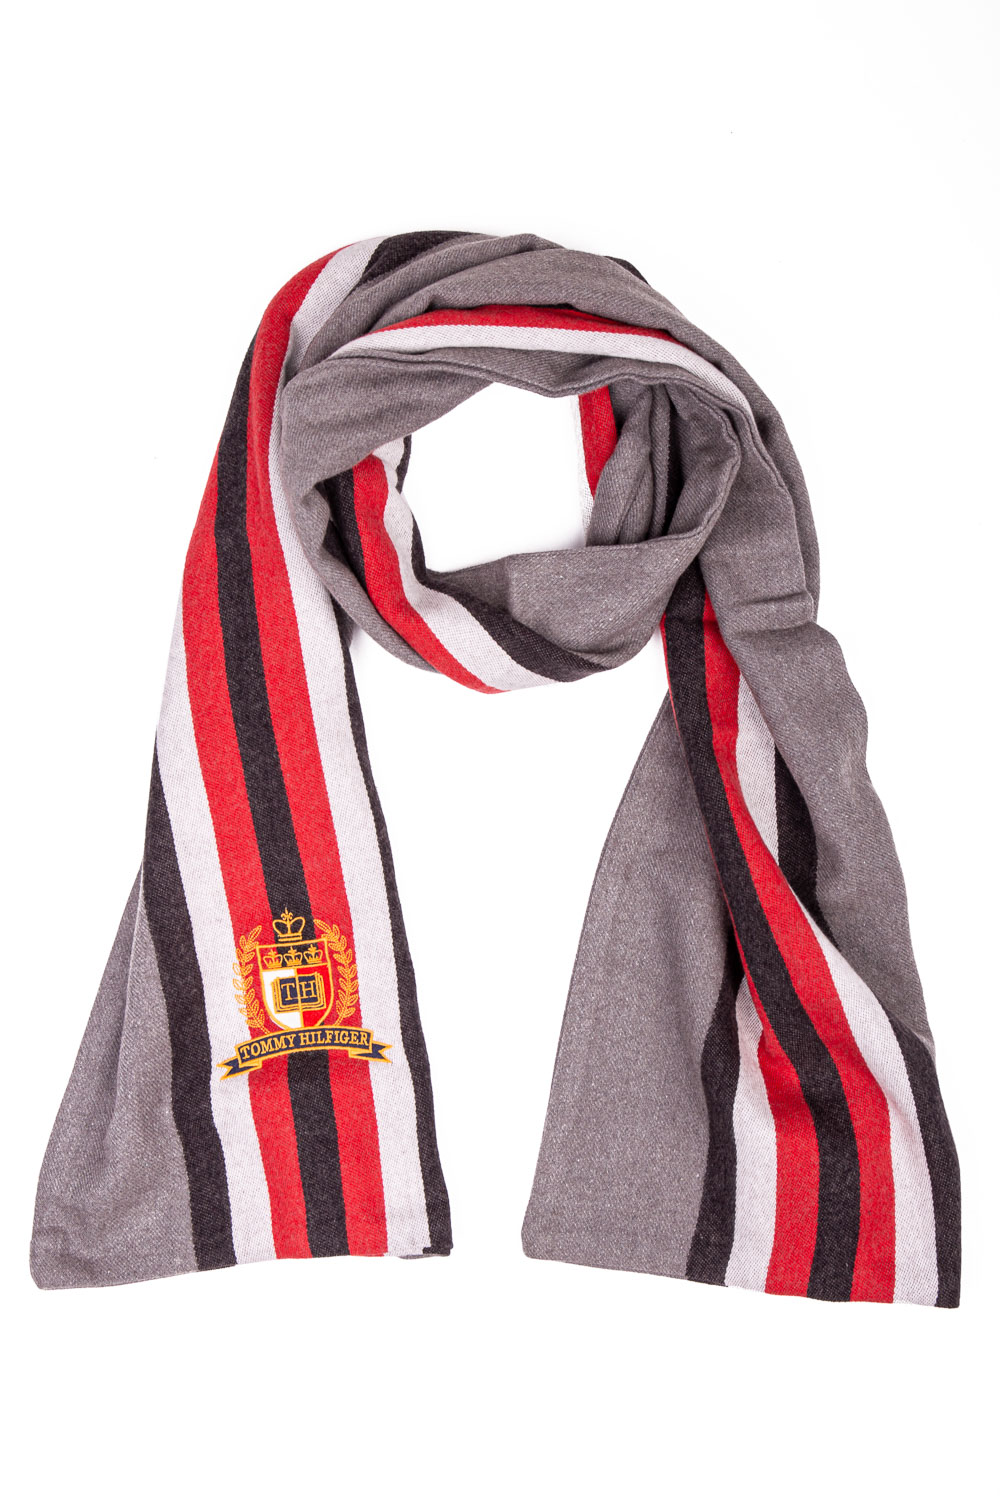 Tommy Hilfiger multicolor men scarf TH College Scarf